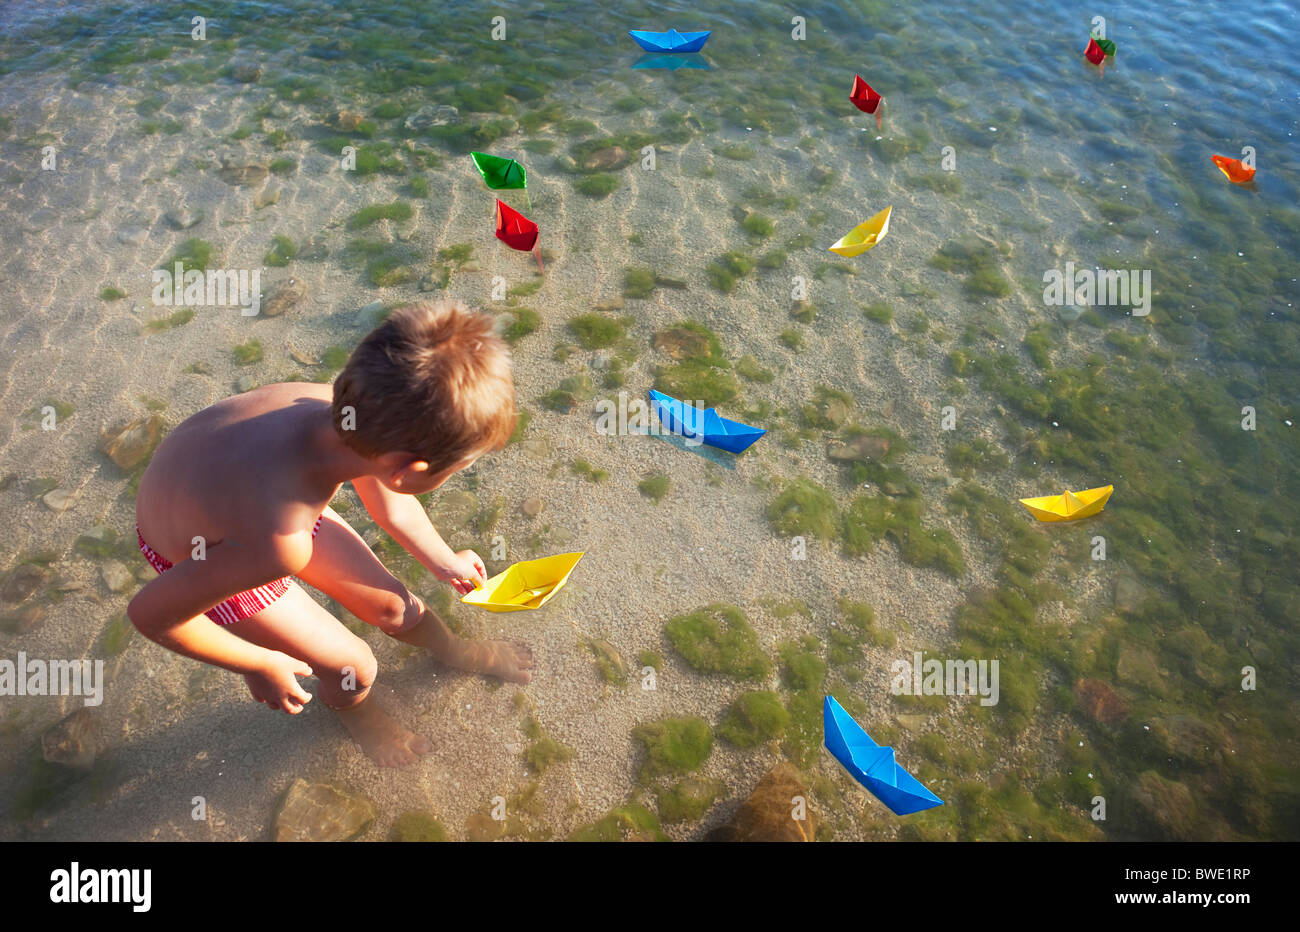 Boy floating paper boats at the beach - Stock Image